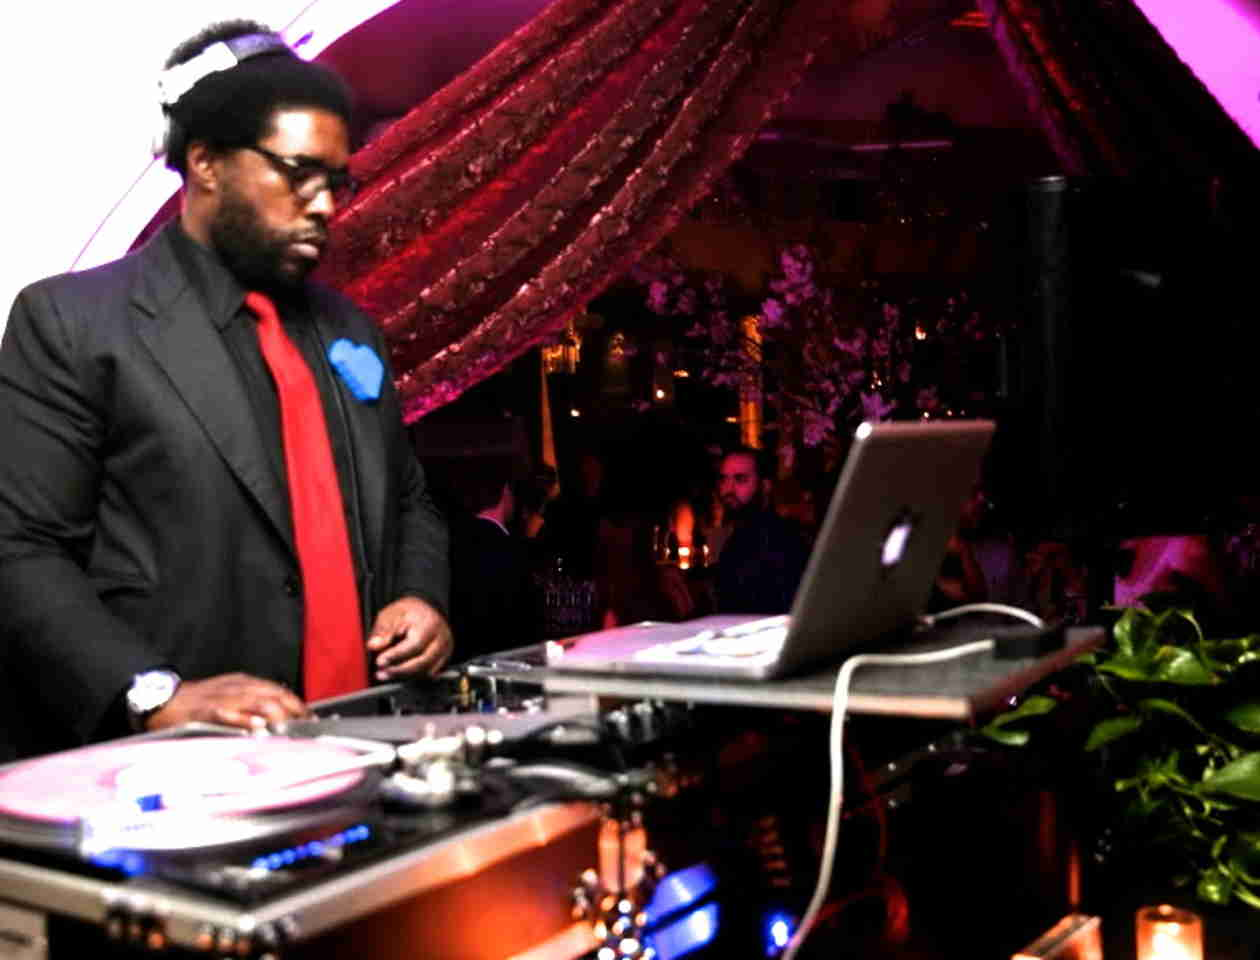 Celebs Celebrate Spring at Exotic NYC Party Deejayed by Questlove (PHOTO)